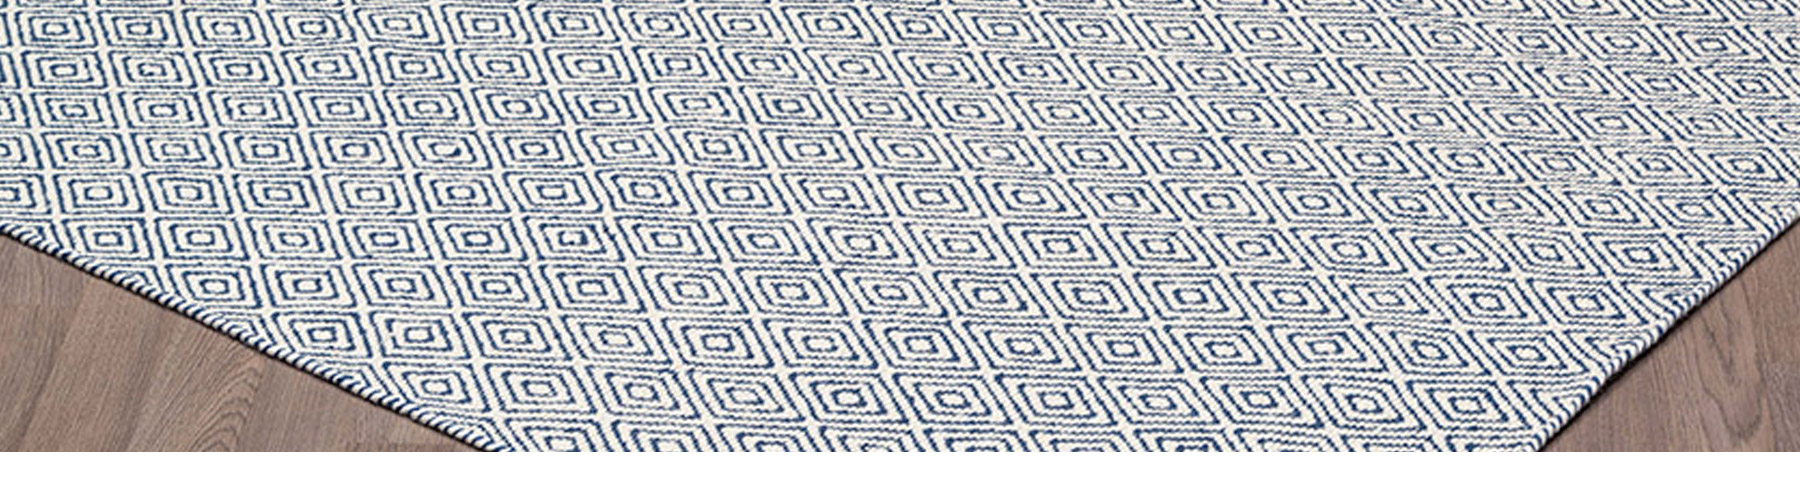 Chicago Ivoire et Marine - Carpette Tapis William